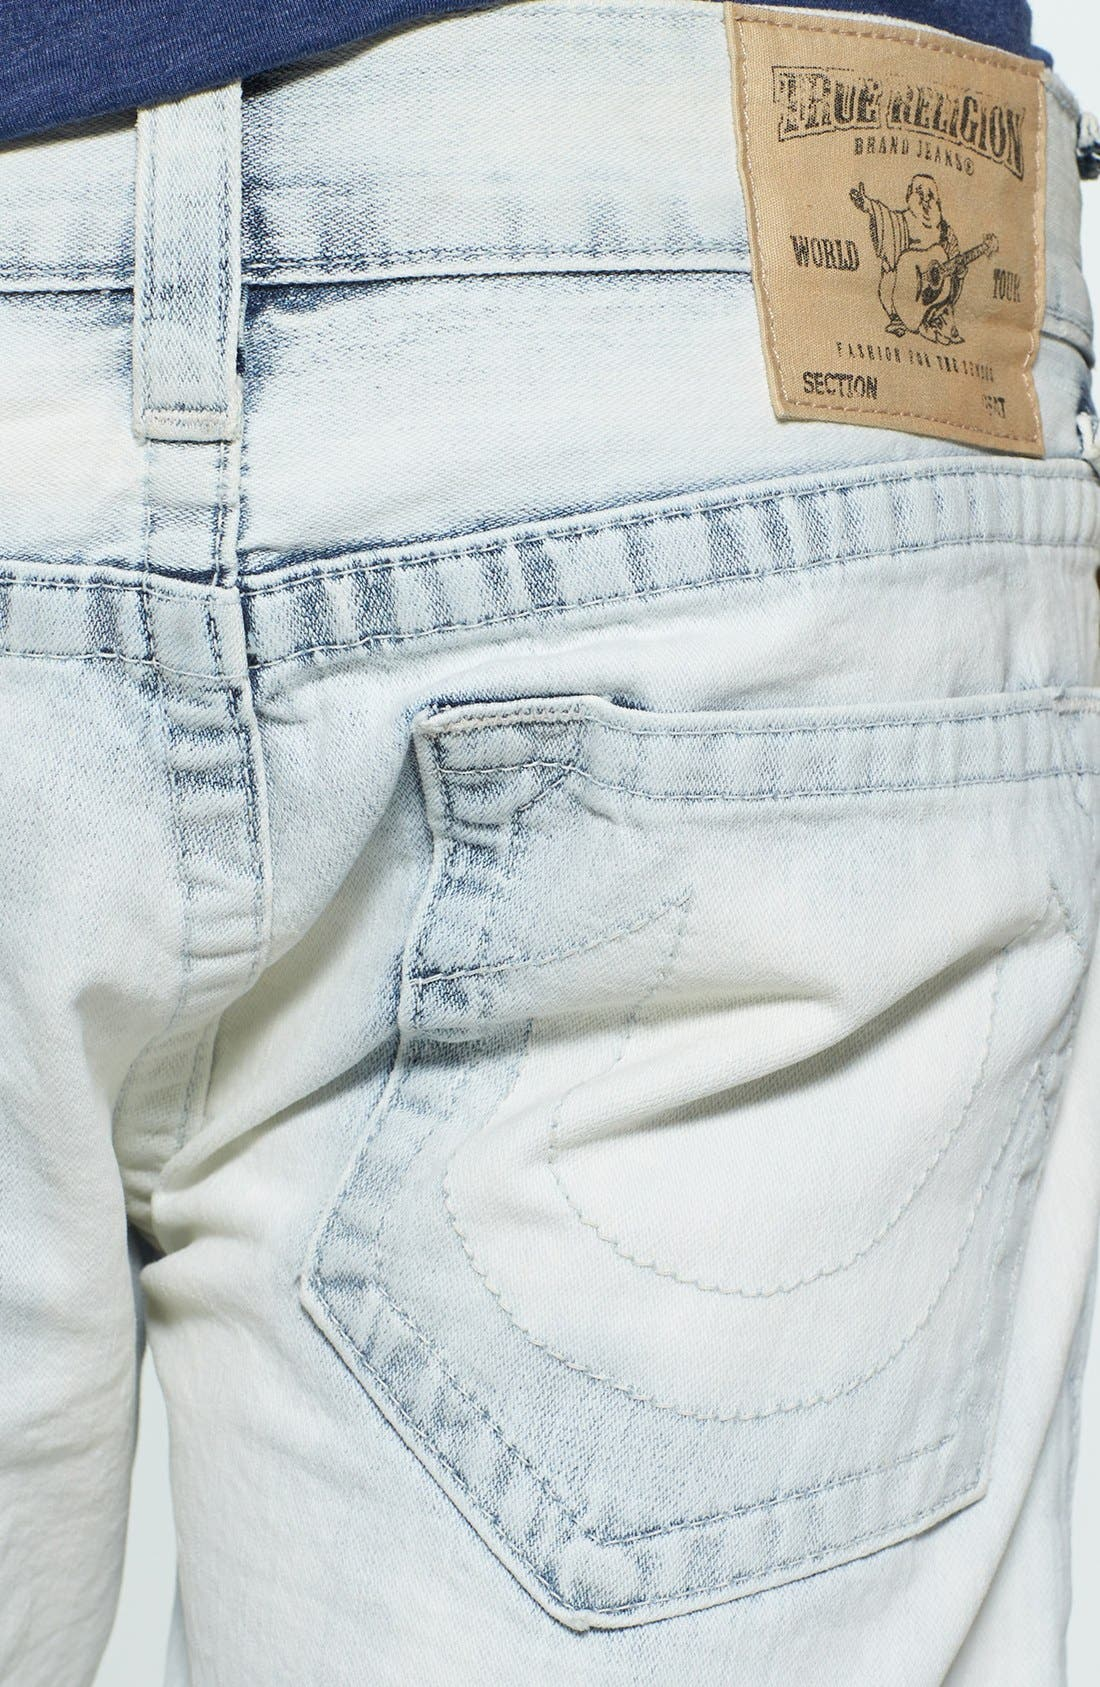 Alternate Image 3  - True Religion Brand Jeans 'Geno' Cutoff Denim Shorts